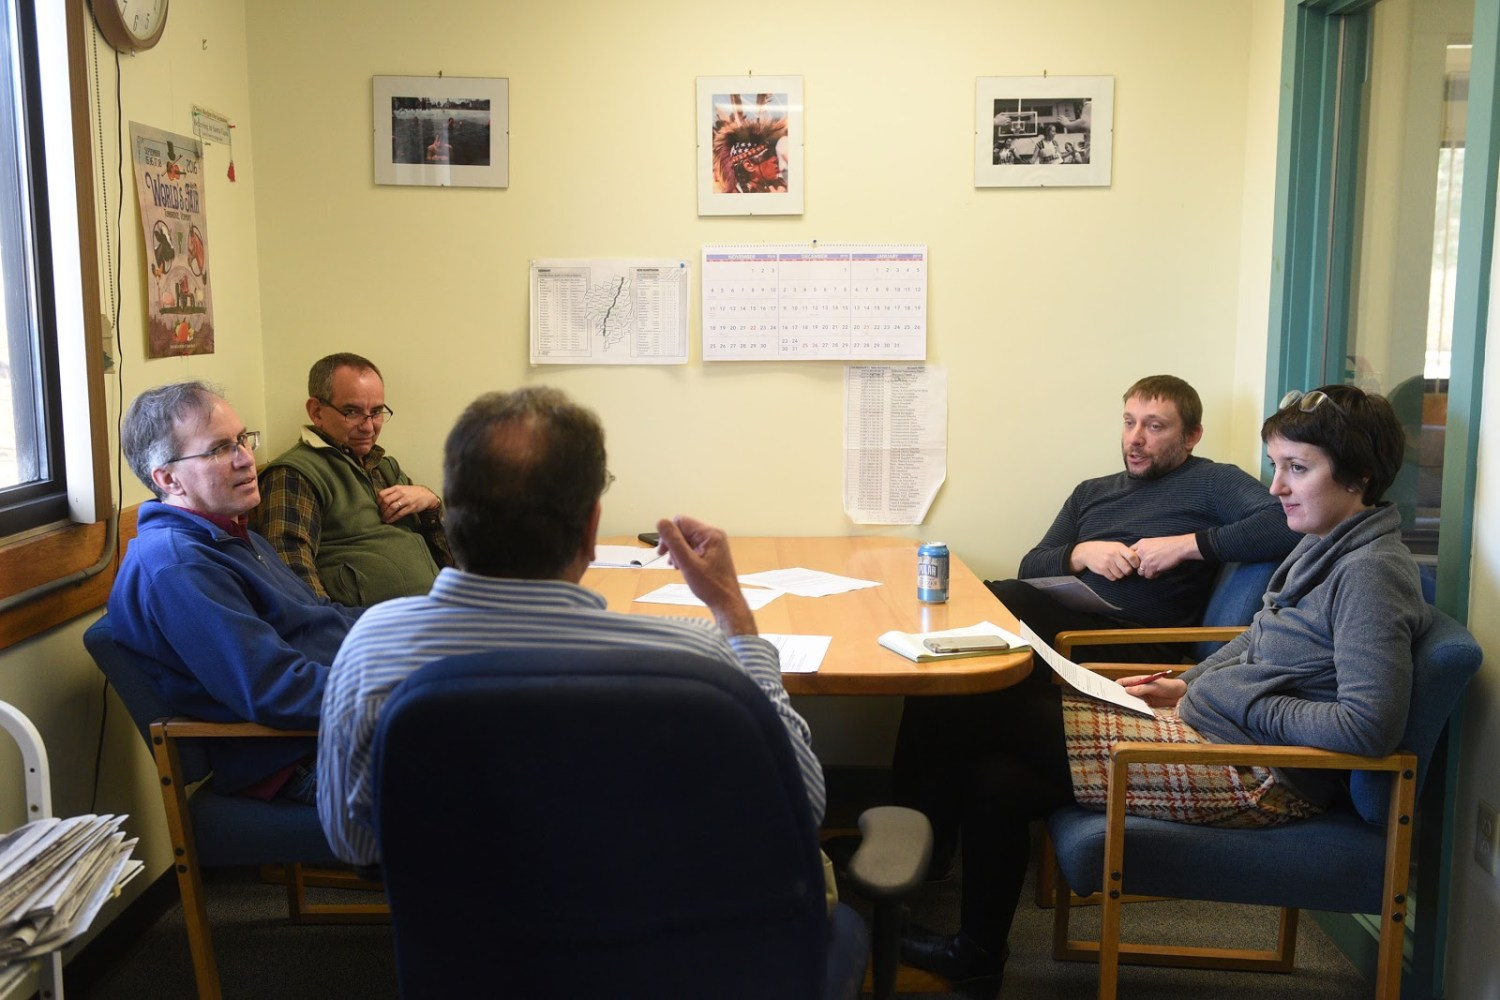 Valley News Web Editor Maggie Cassidy, right, participates in the weekly planning meeting at the Valley News in West Lebanon, N.H., on Dec. 4, 2018. From left are Photo Editor Geoff Hansen, News Editor John Gregg, Editor Martin Frank and Features Editor Alex Hanson. Cassidy has been named the newspaper's next Editor, starting the job on Dec. 17. (Valley News - Jennifer Hauck) Copyright Valley News. May not be reprinted or used online without permission. Send requests to permission@vnews.com.